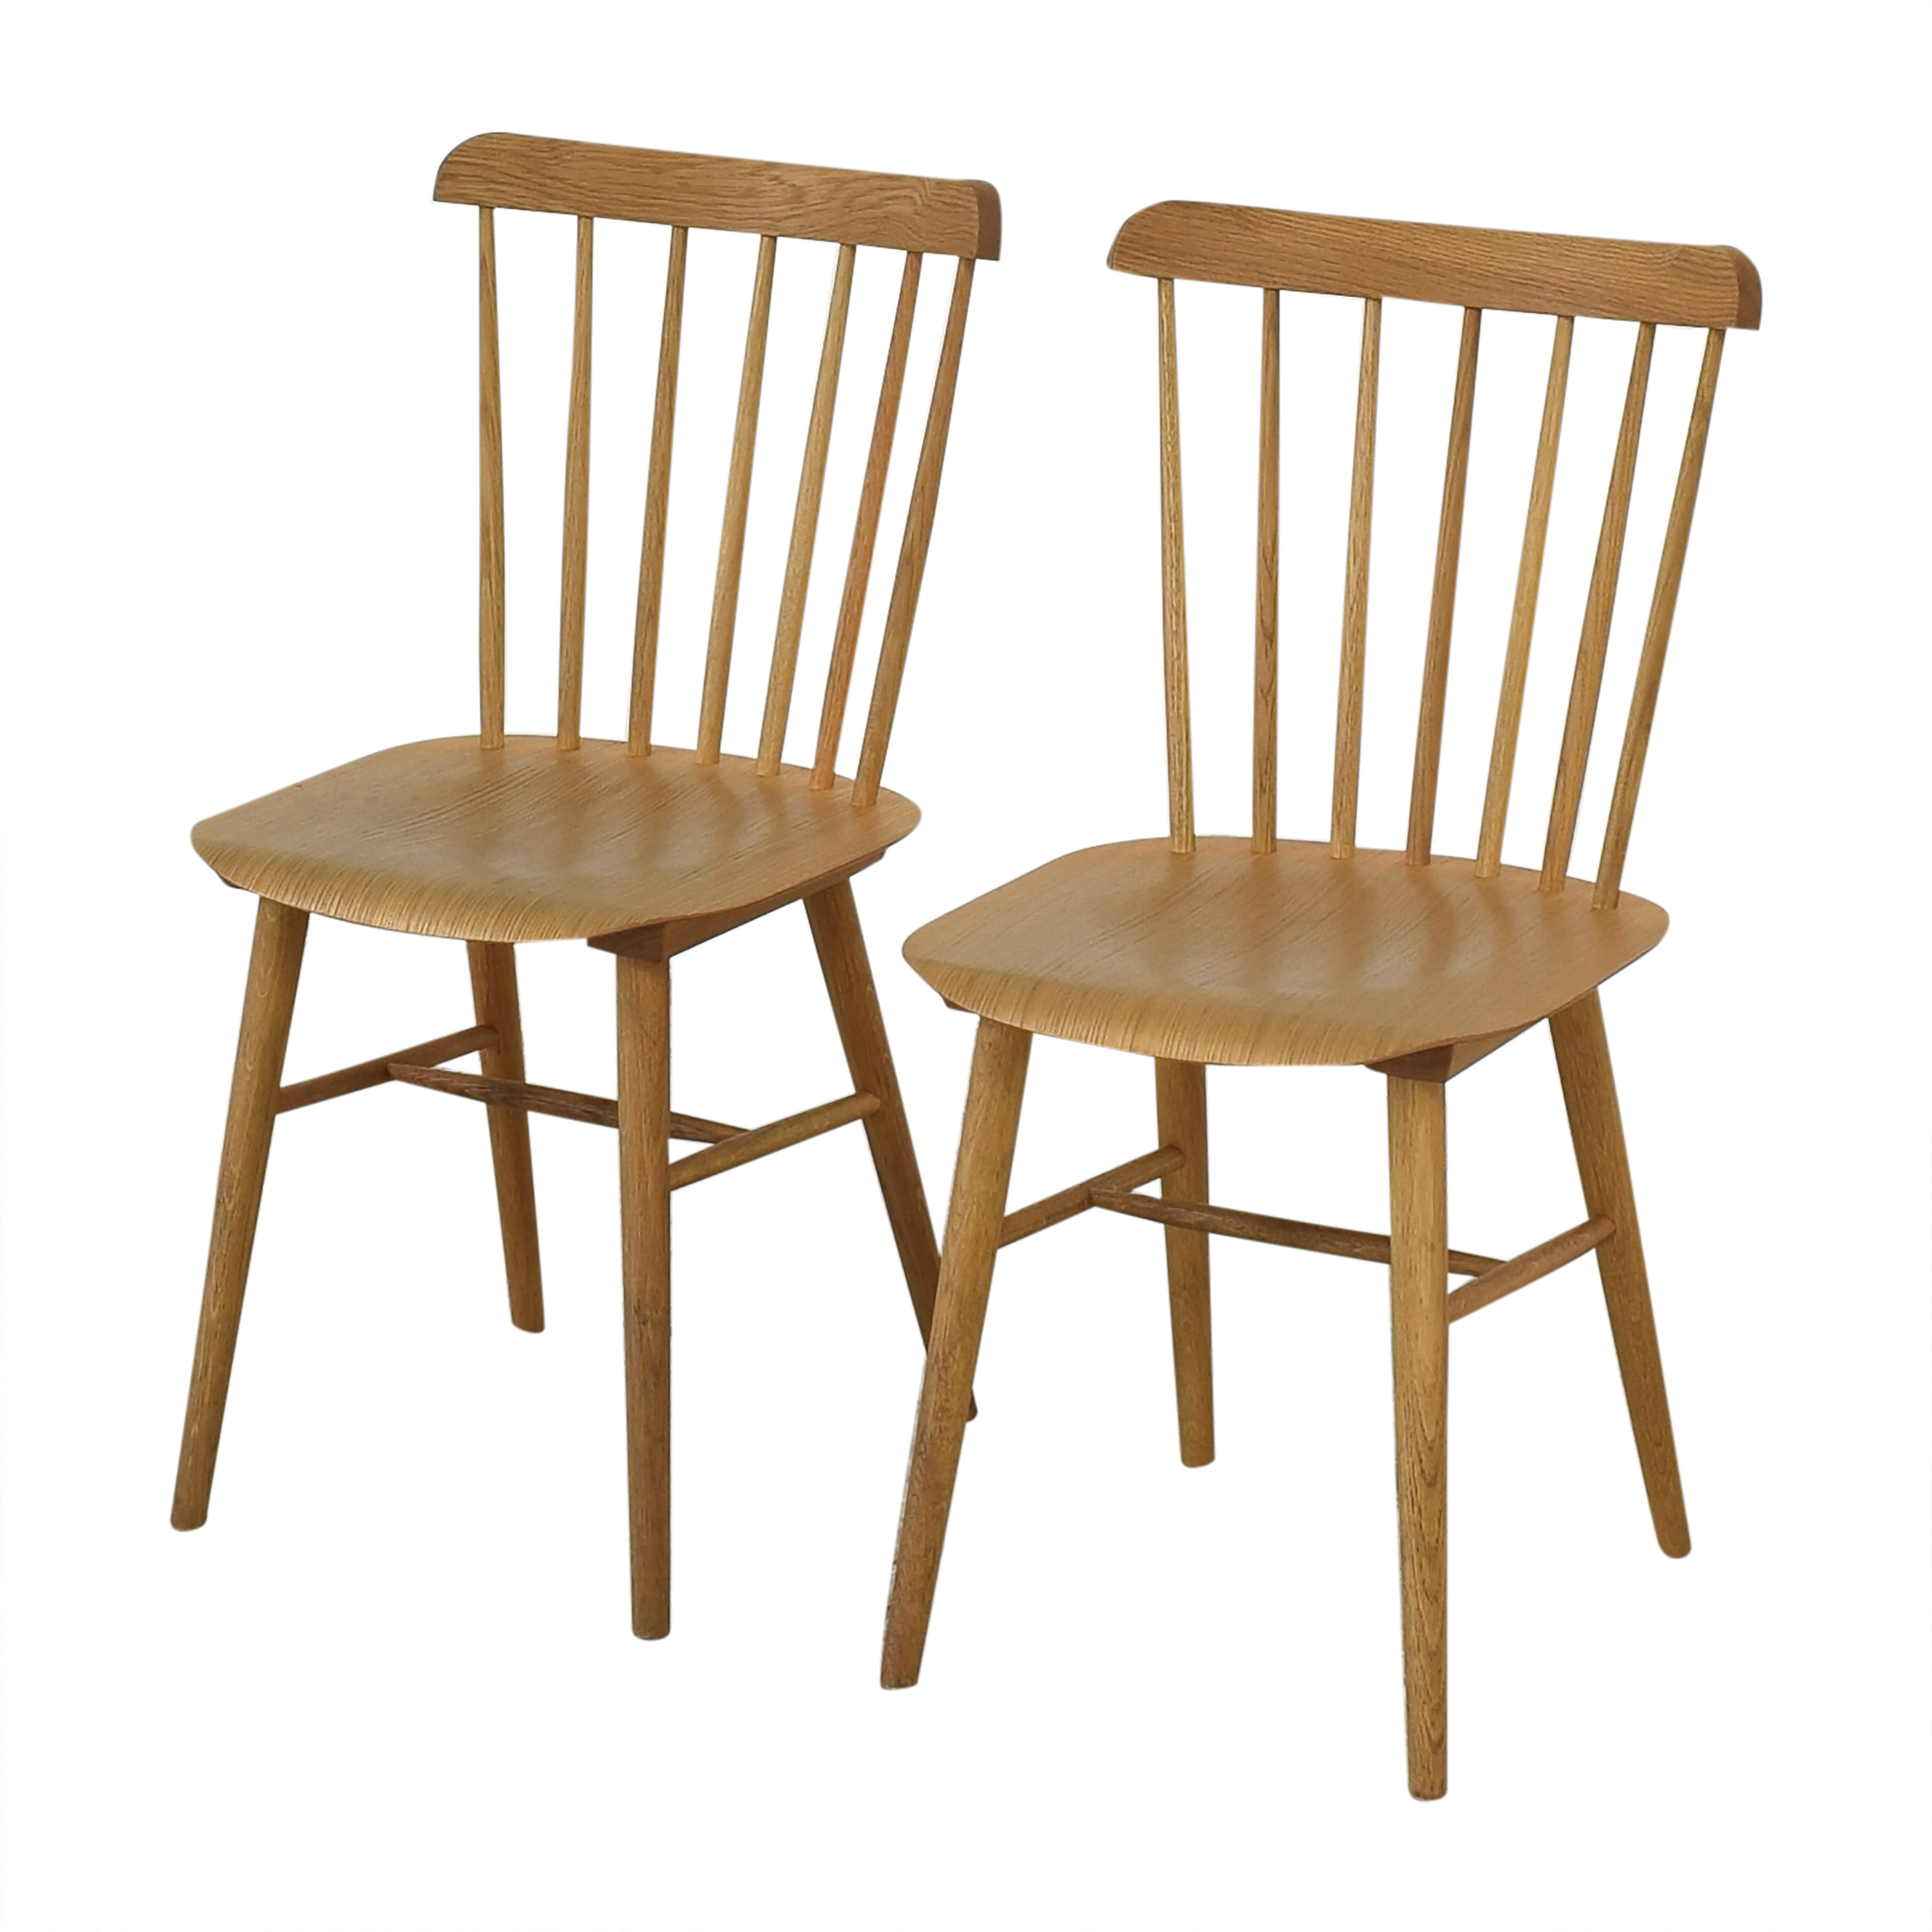 TON Ironica Dining Side Chairs / Dining Chairs